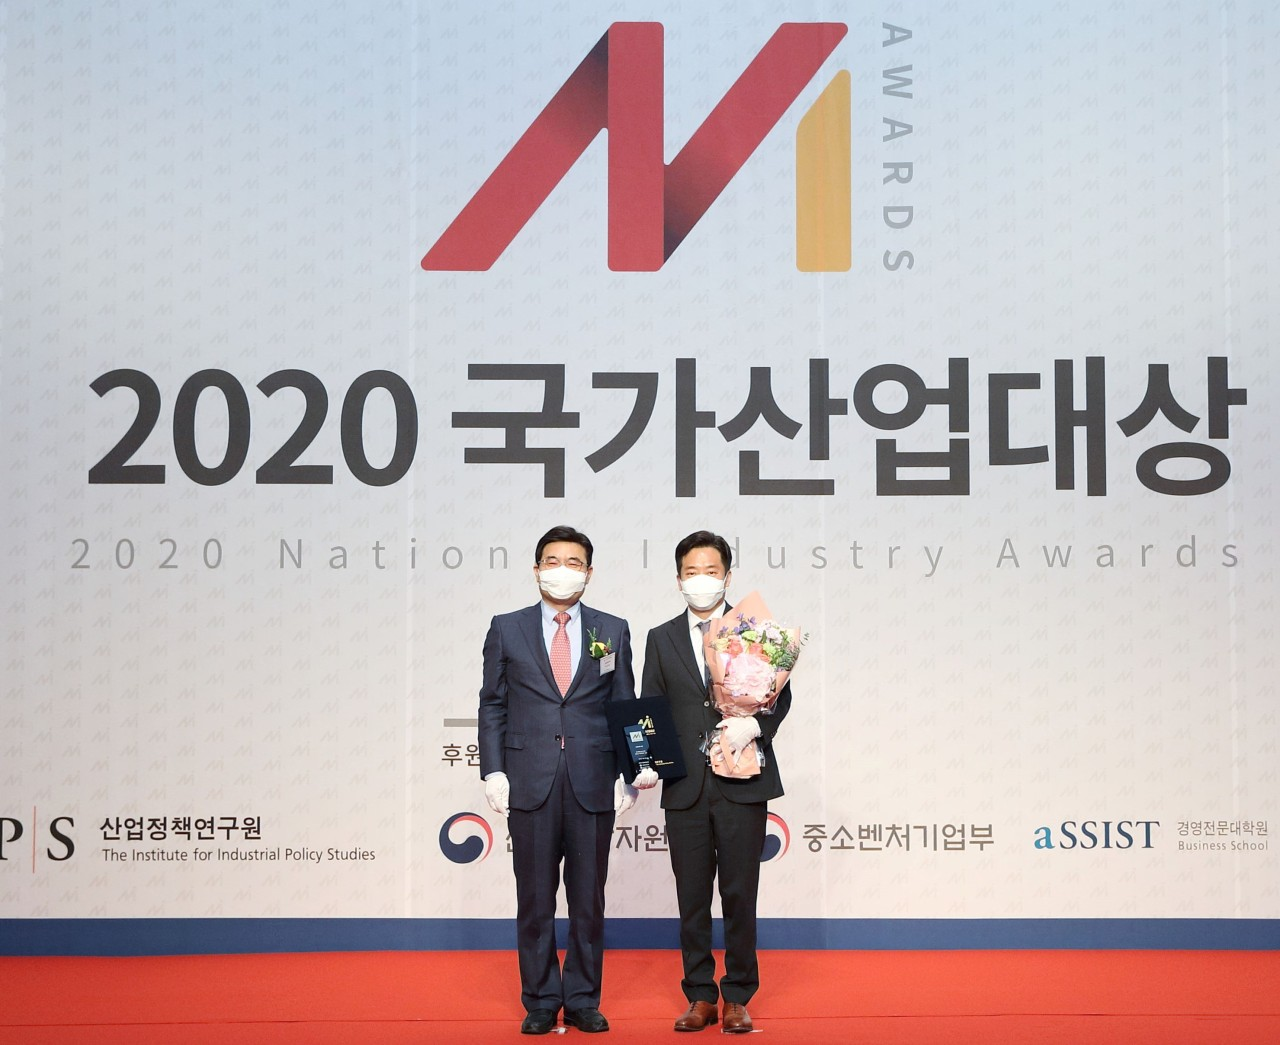 McDonald's Korea Director Yang Hyung-geun (right), and Park Ki-chan, president of the Institute for Industrial Policy Studies, pose for a photo at the awards ceremony on Thursday in Seoul. (McDonald's Korea)